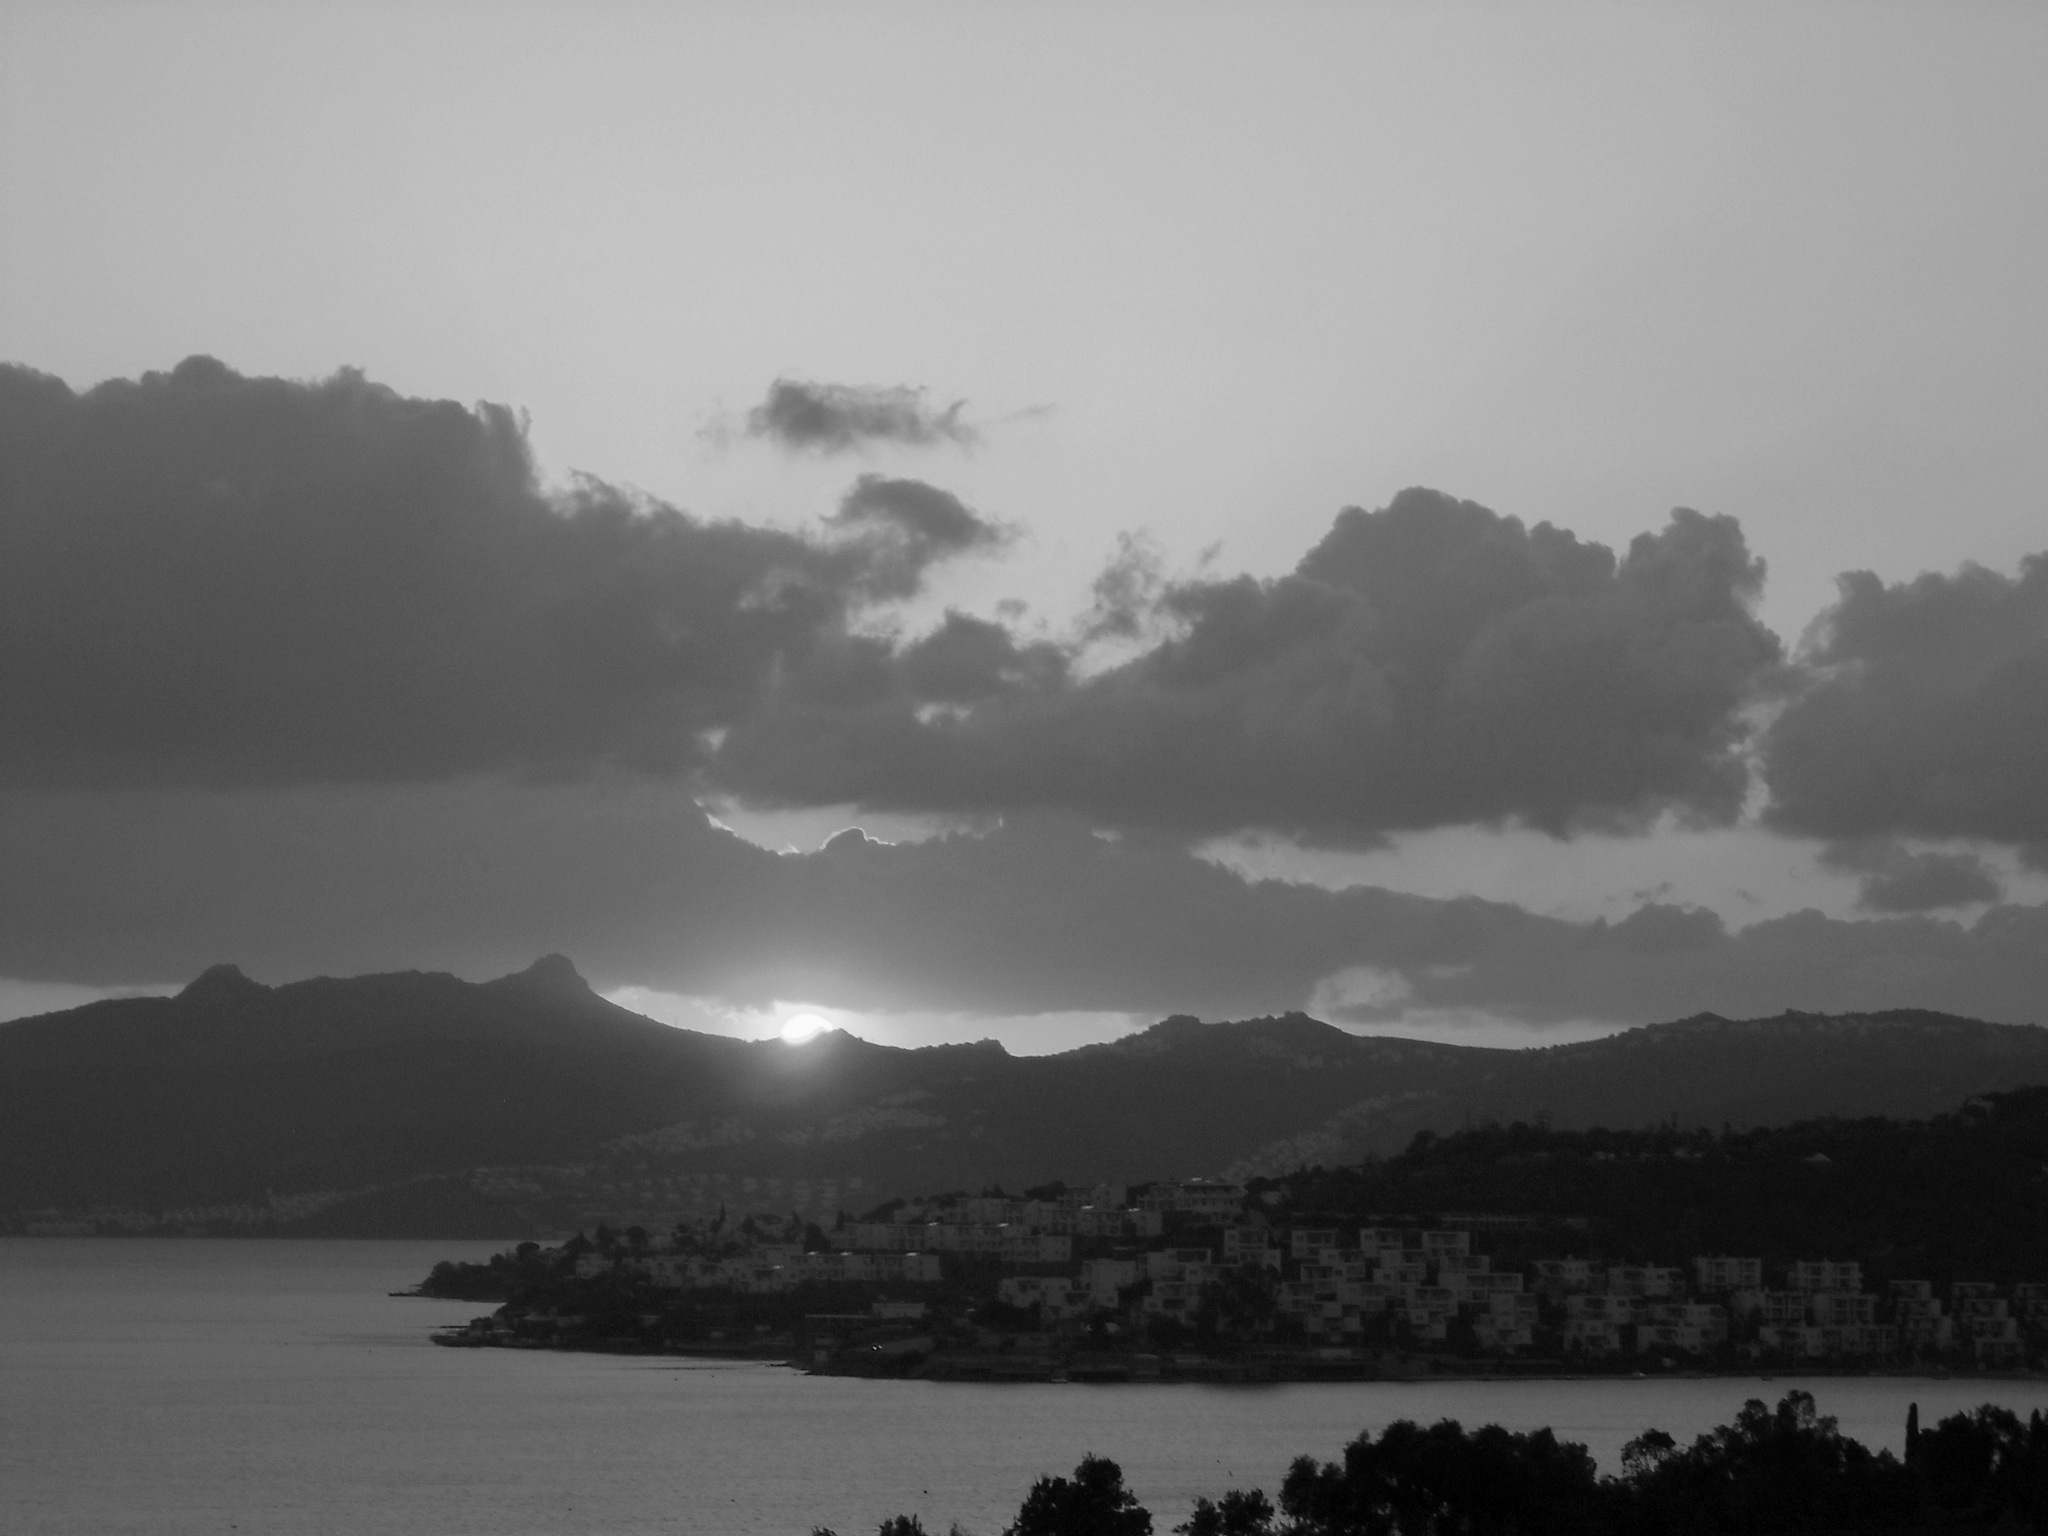 SUNSET OVER THE BITEZ BAY, B&W by Akin Saner